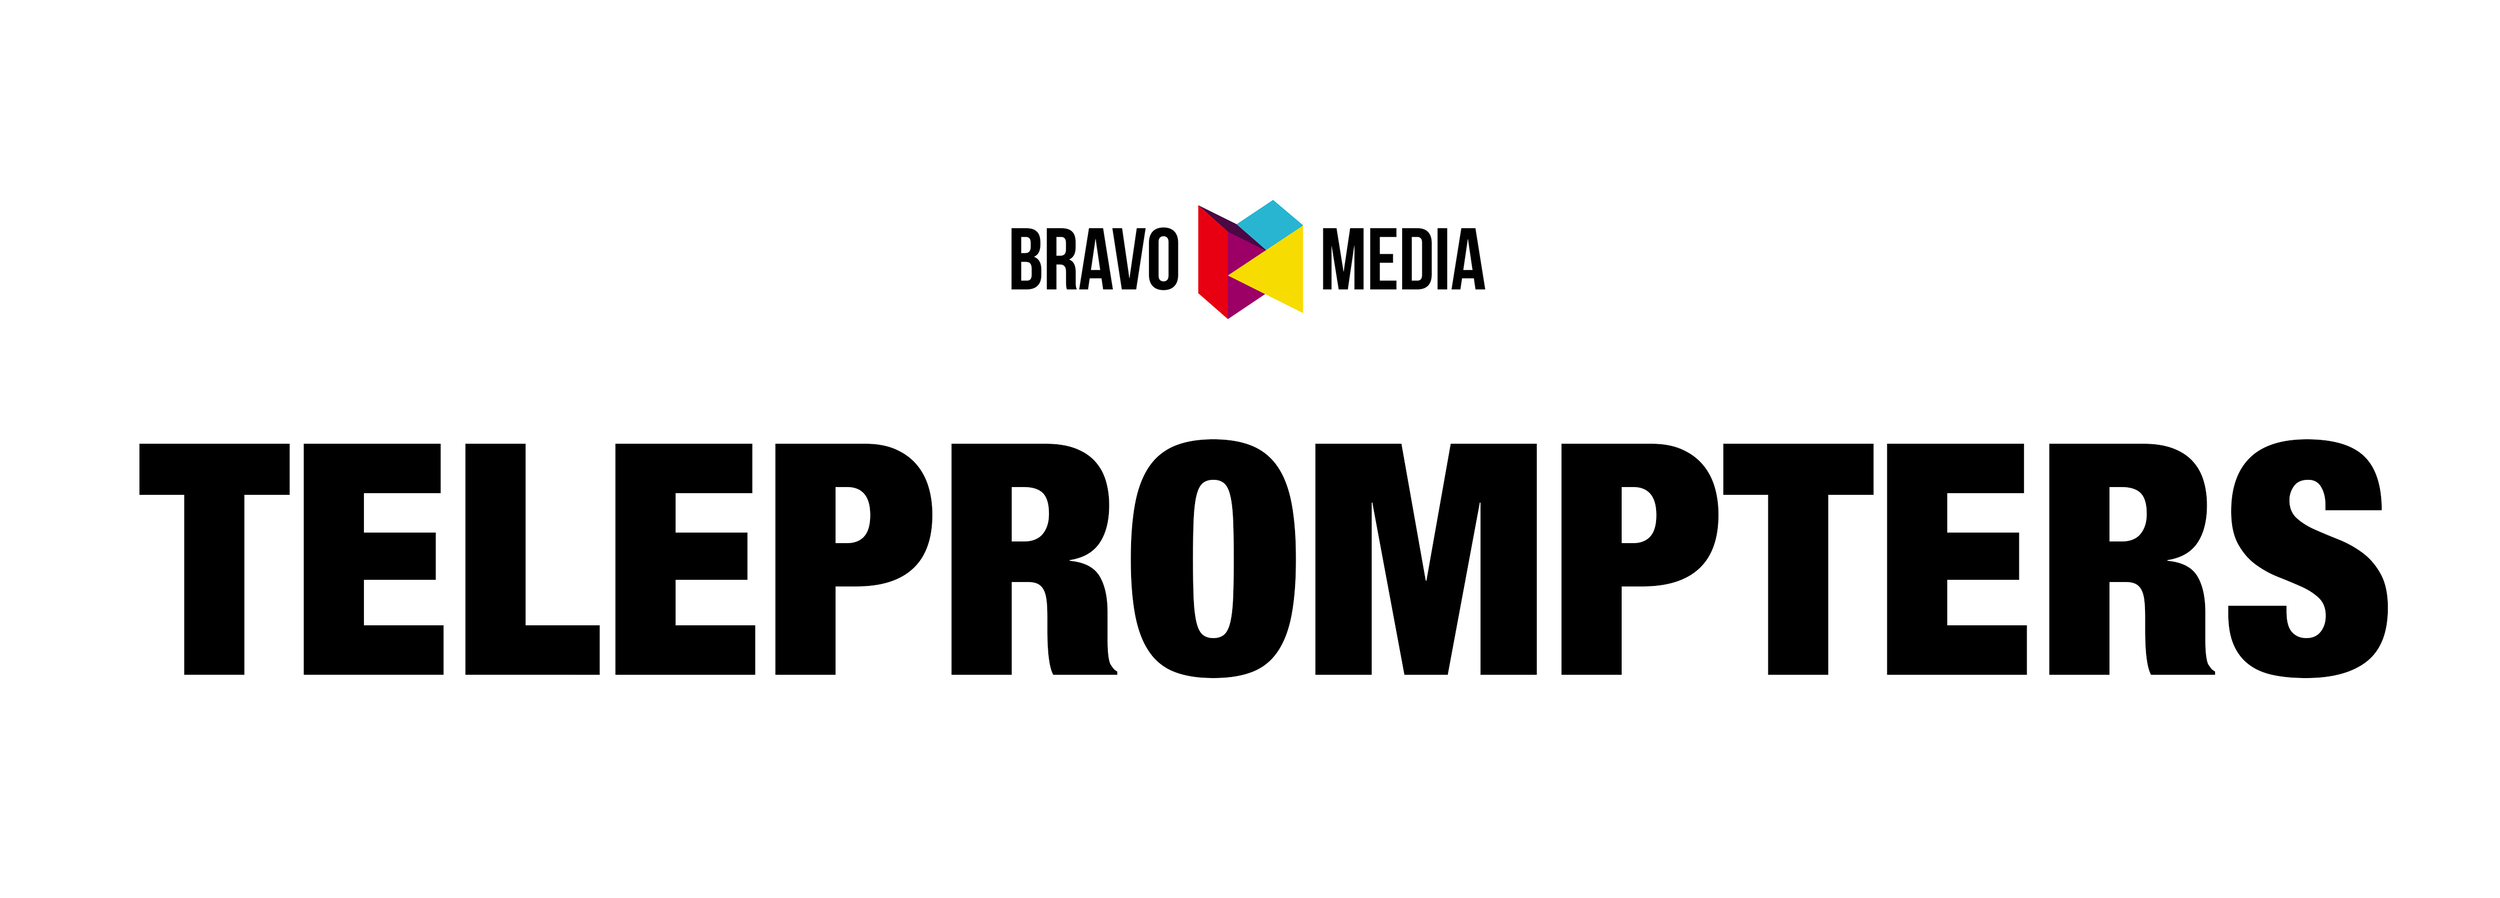 Rent teleprompters with Bravo